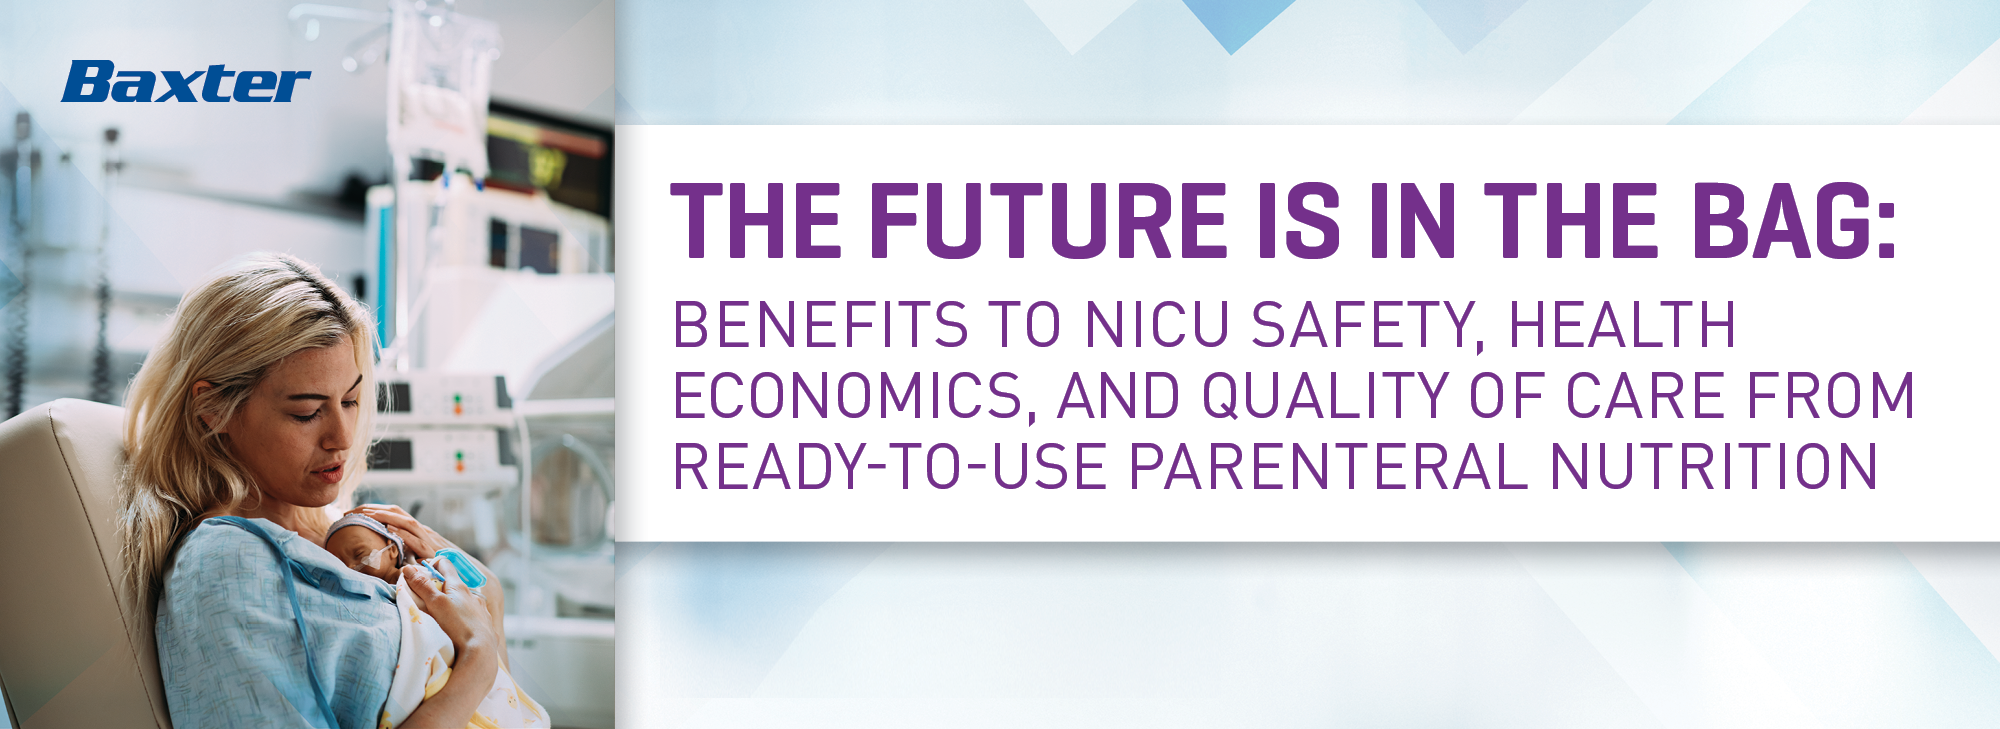 THE FUTURE IS IN THE BAG: BENEFITS TO NICU SAFETY, HEALTH ECONOMICS, AND QUALITY OF CARE FROM READY¬ TO ¬USE PARENTERAL NUTRITION